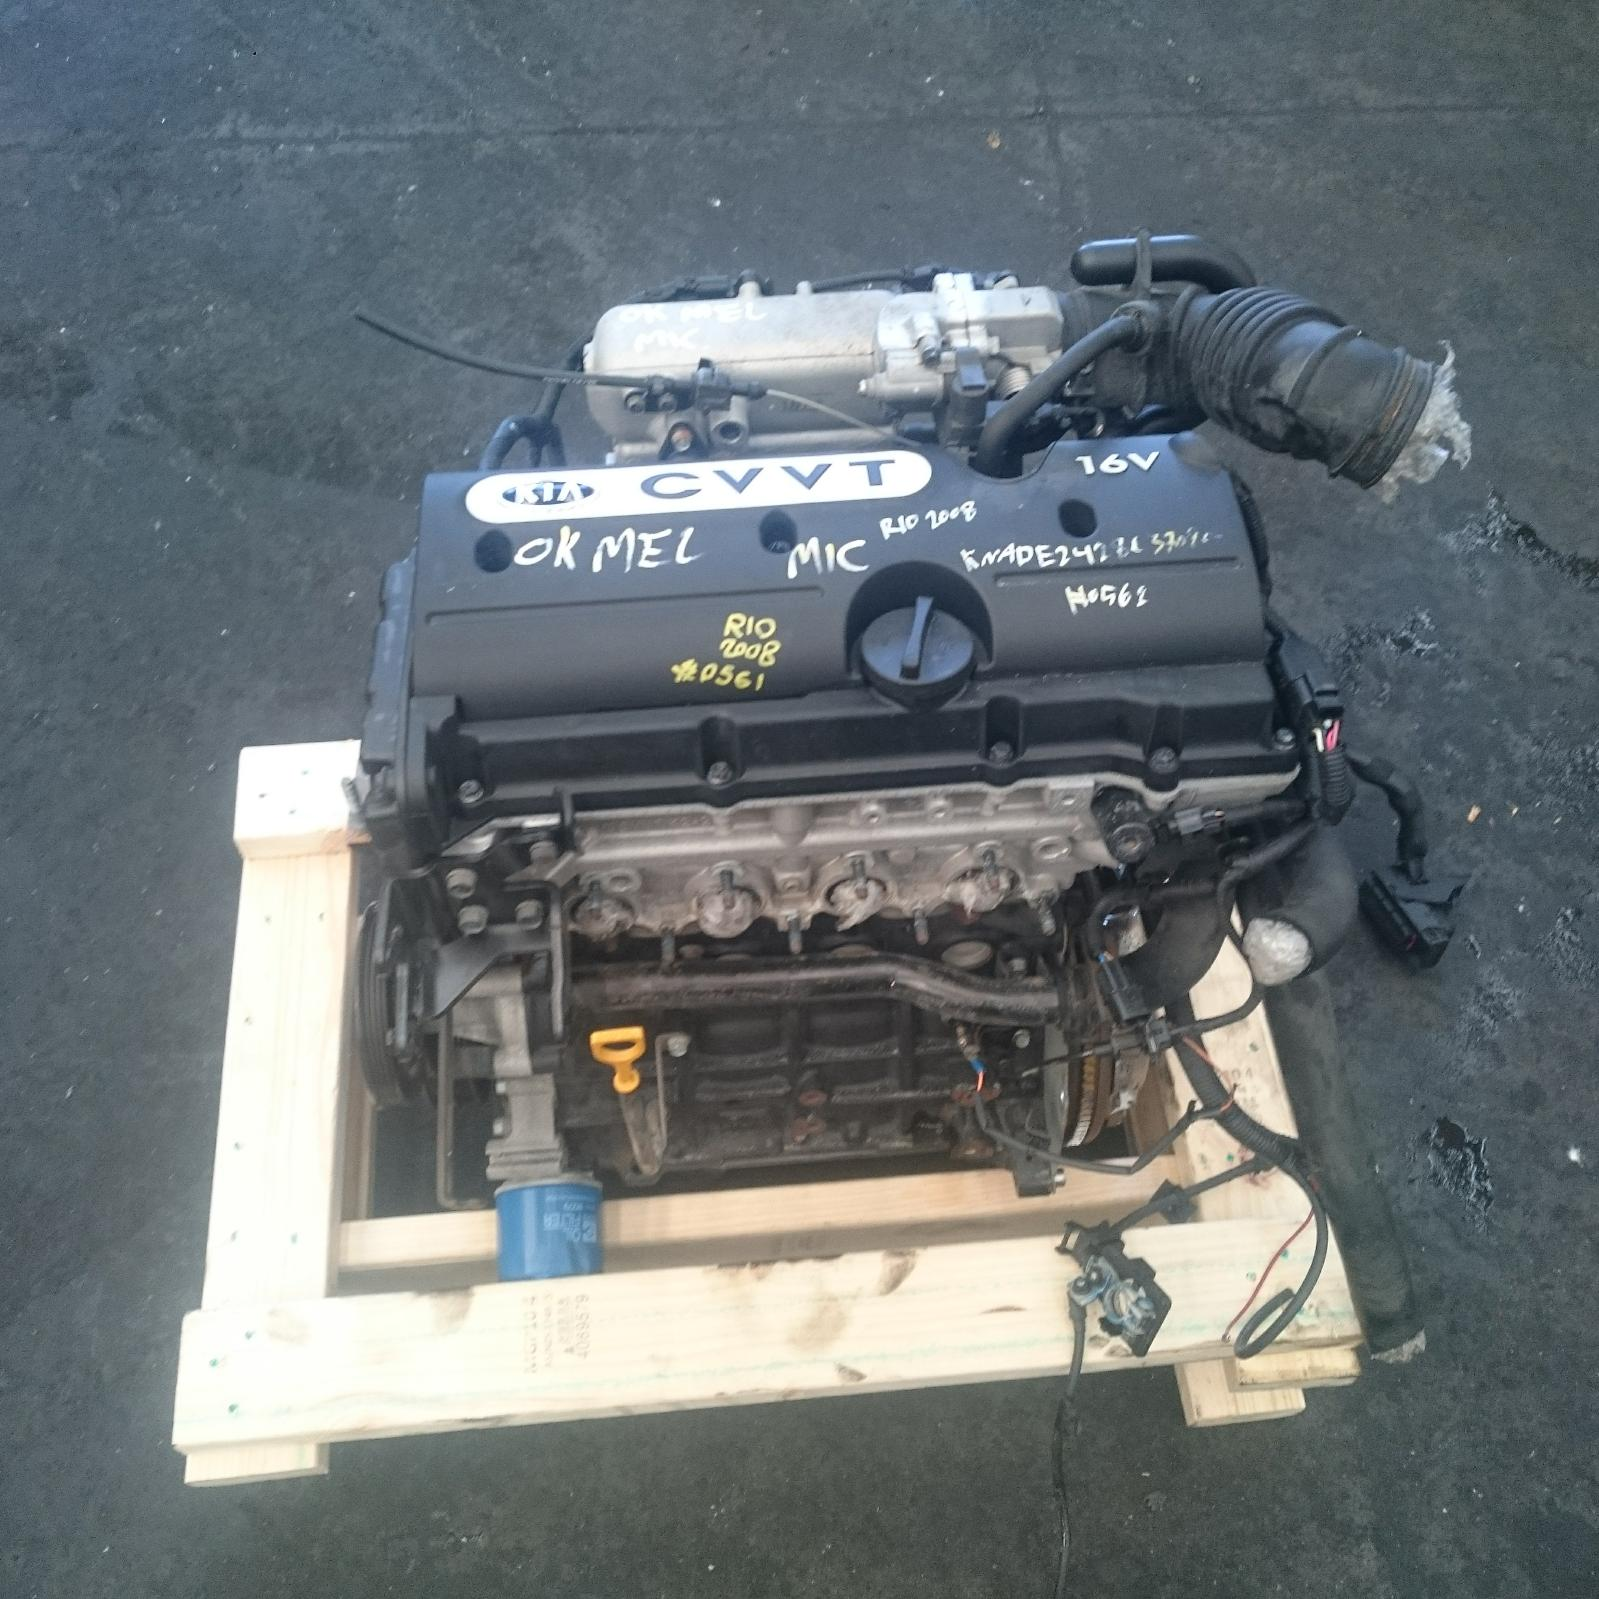 244849  Used Engine For 2008 Rio